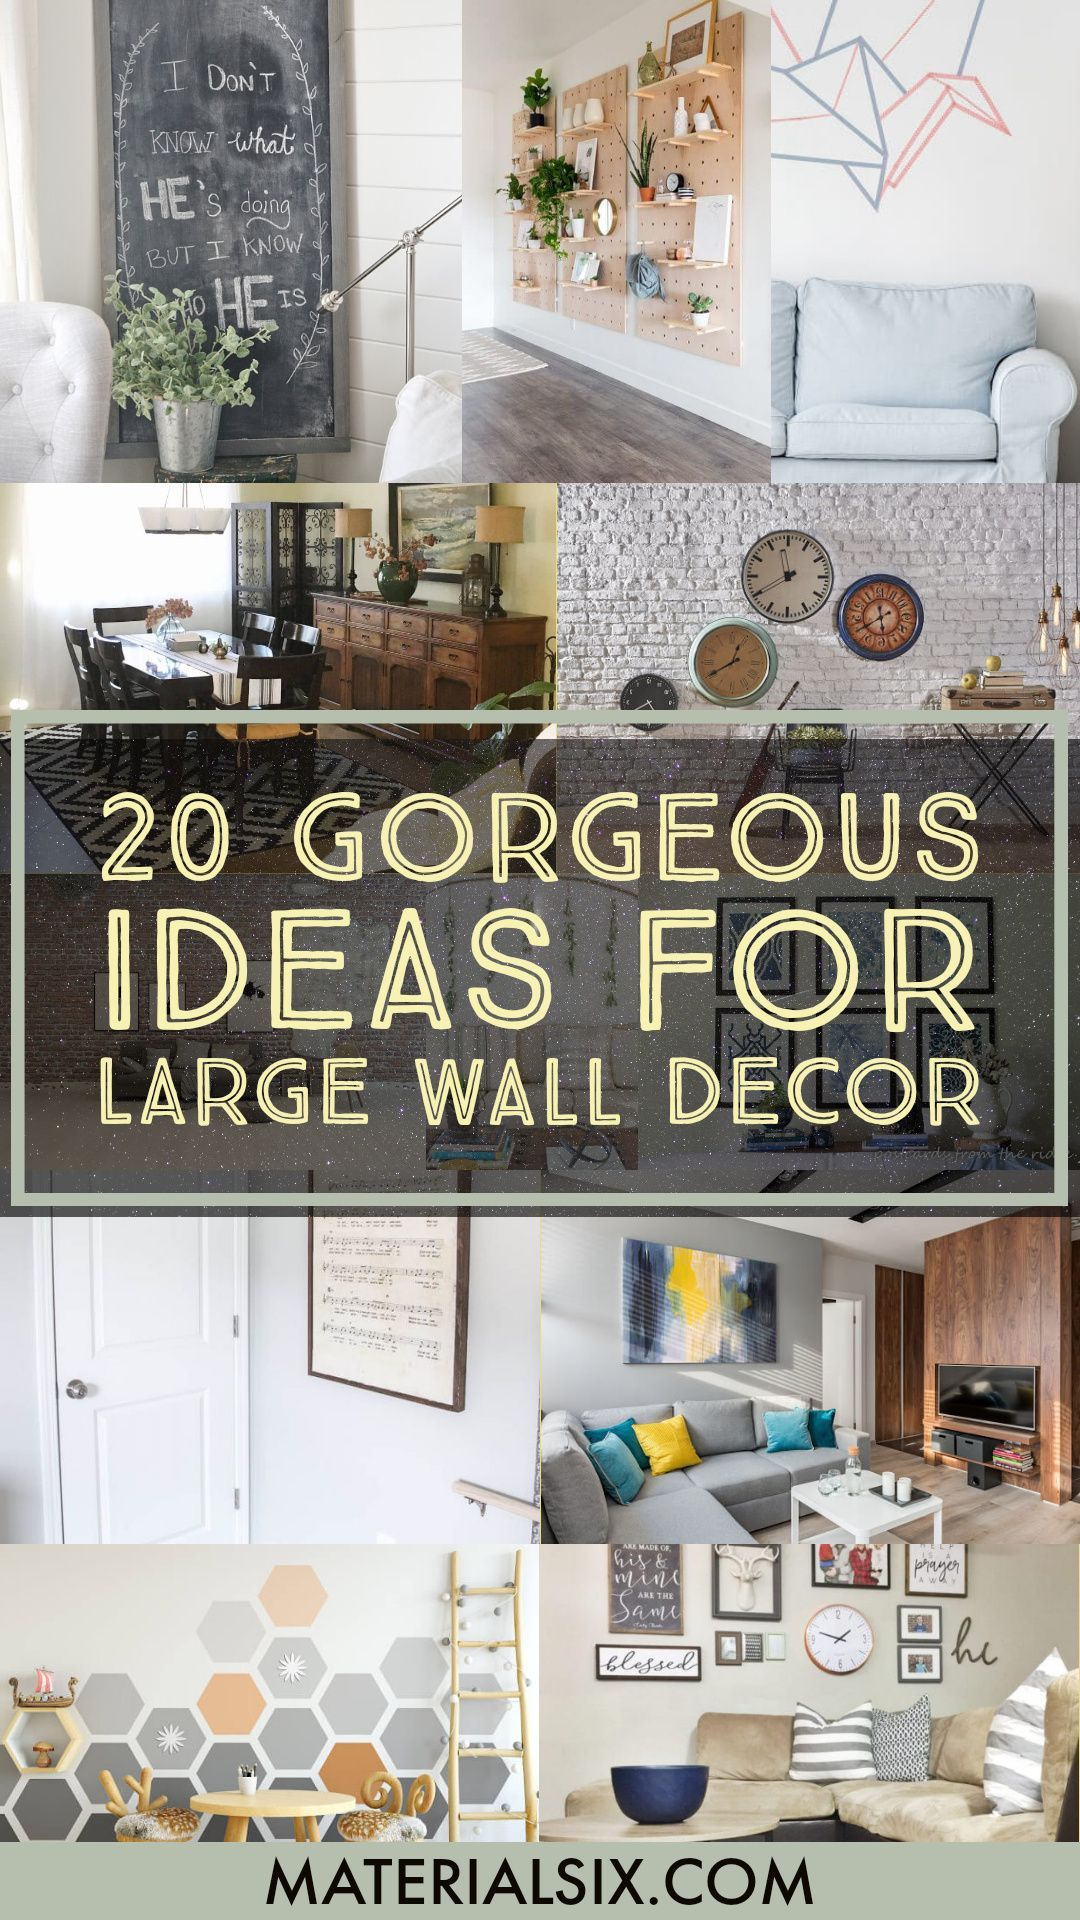 20 Gorgeous Ideas For Large Wall Decor Materialsix Com Large Wall Decor Big Wall Art Unique Wall Decor